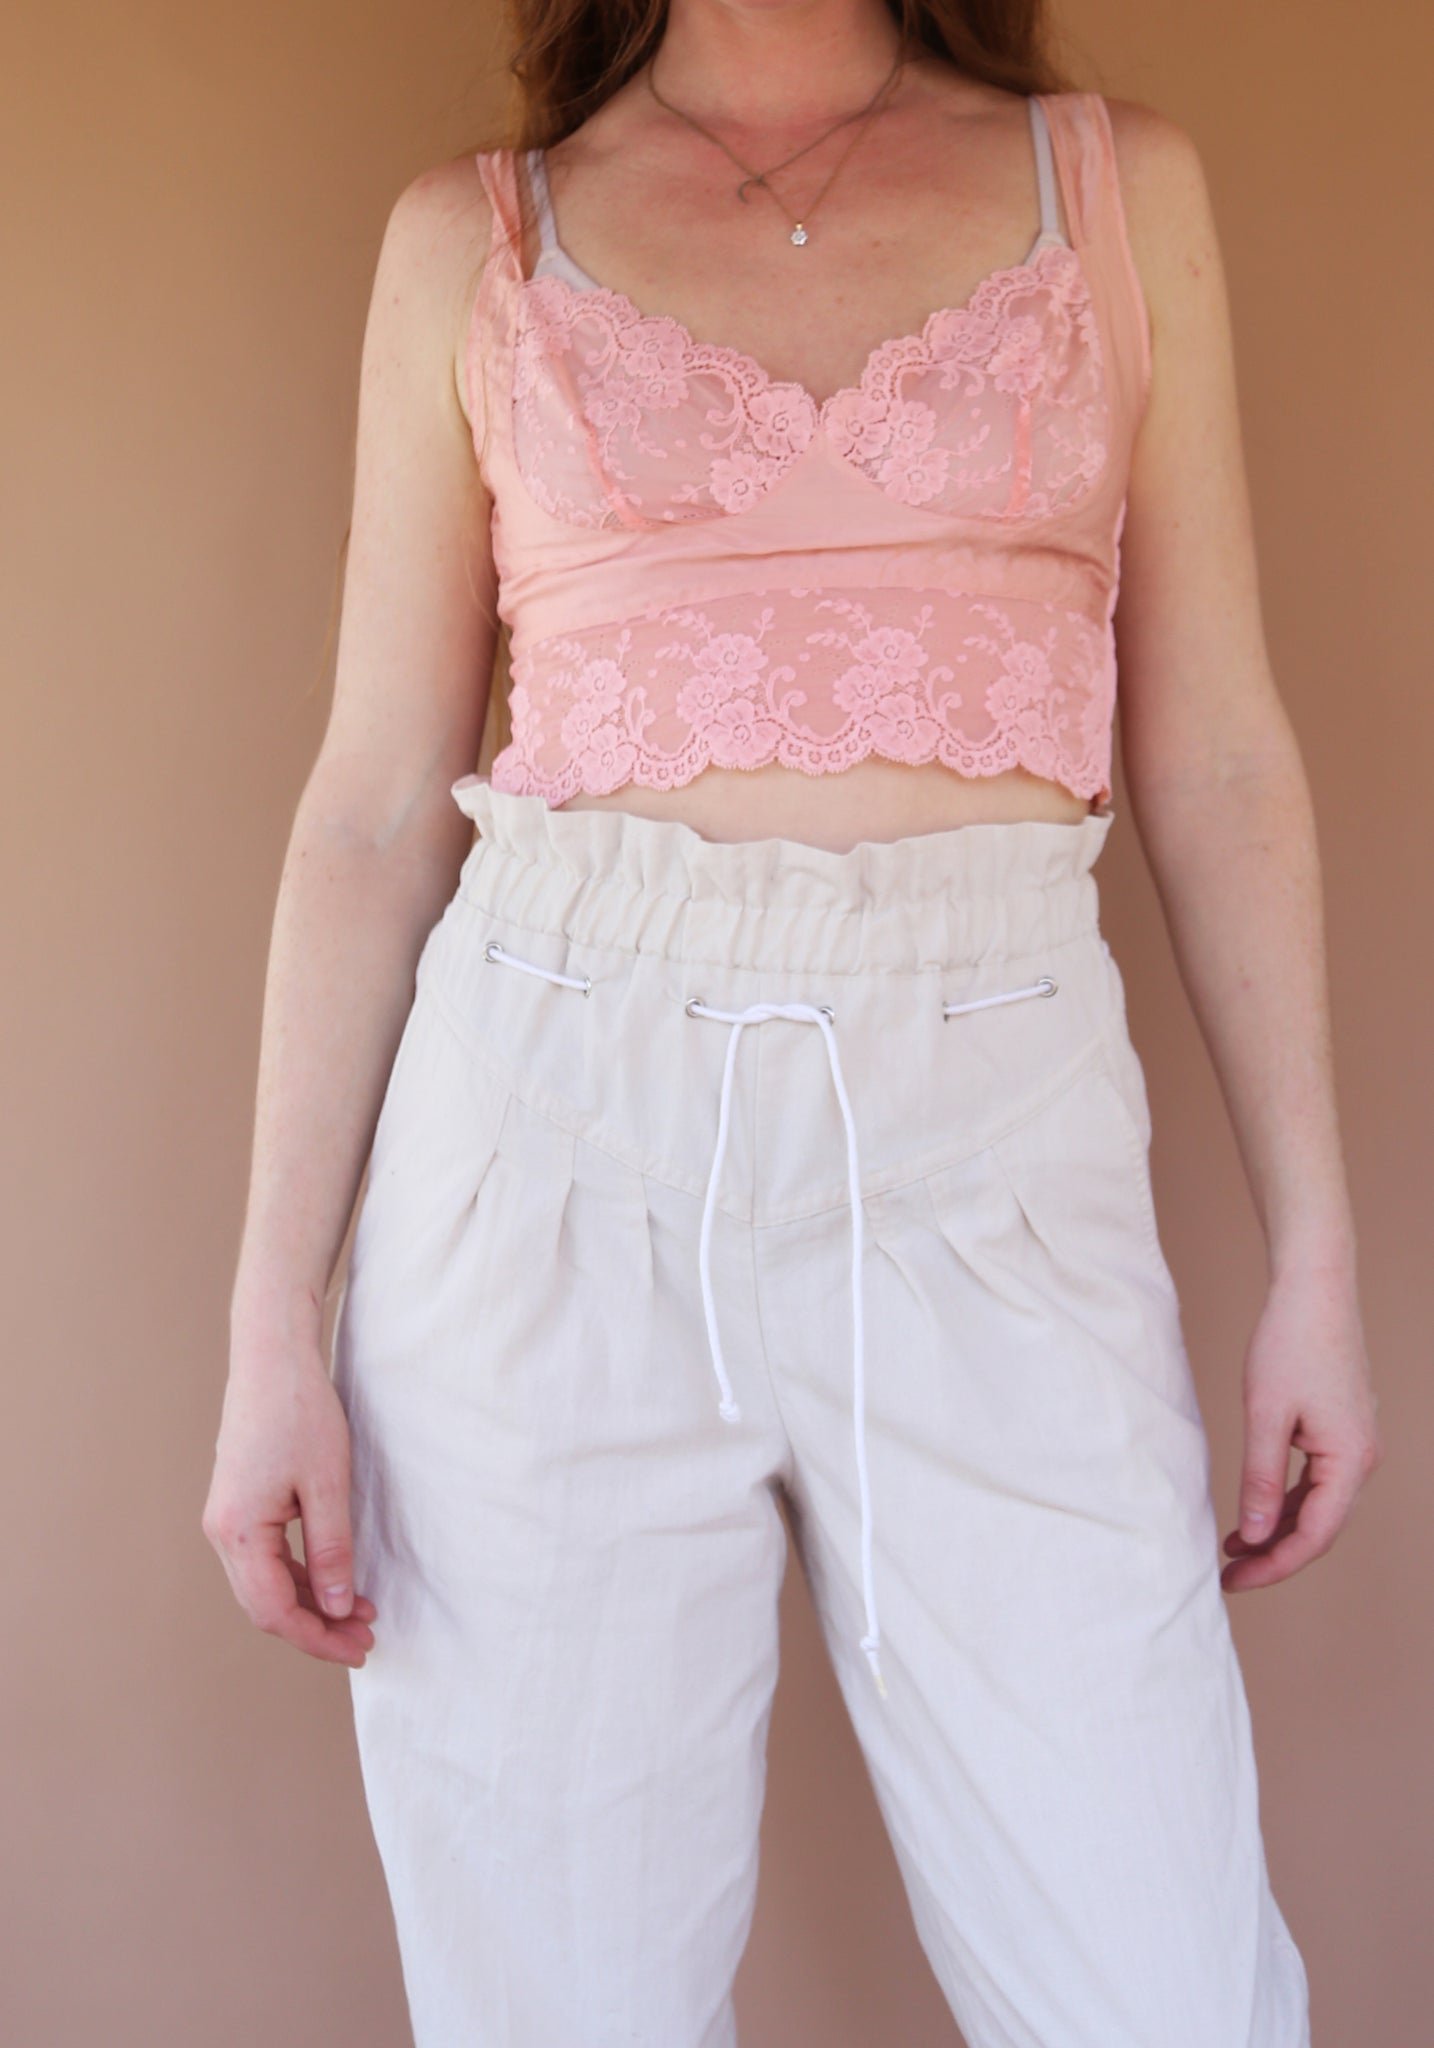 Oat high waisted Pants